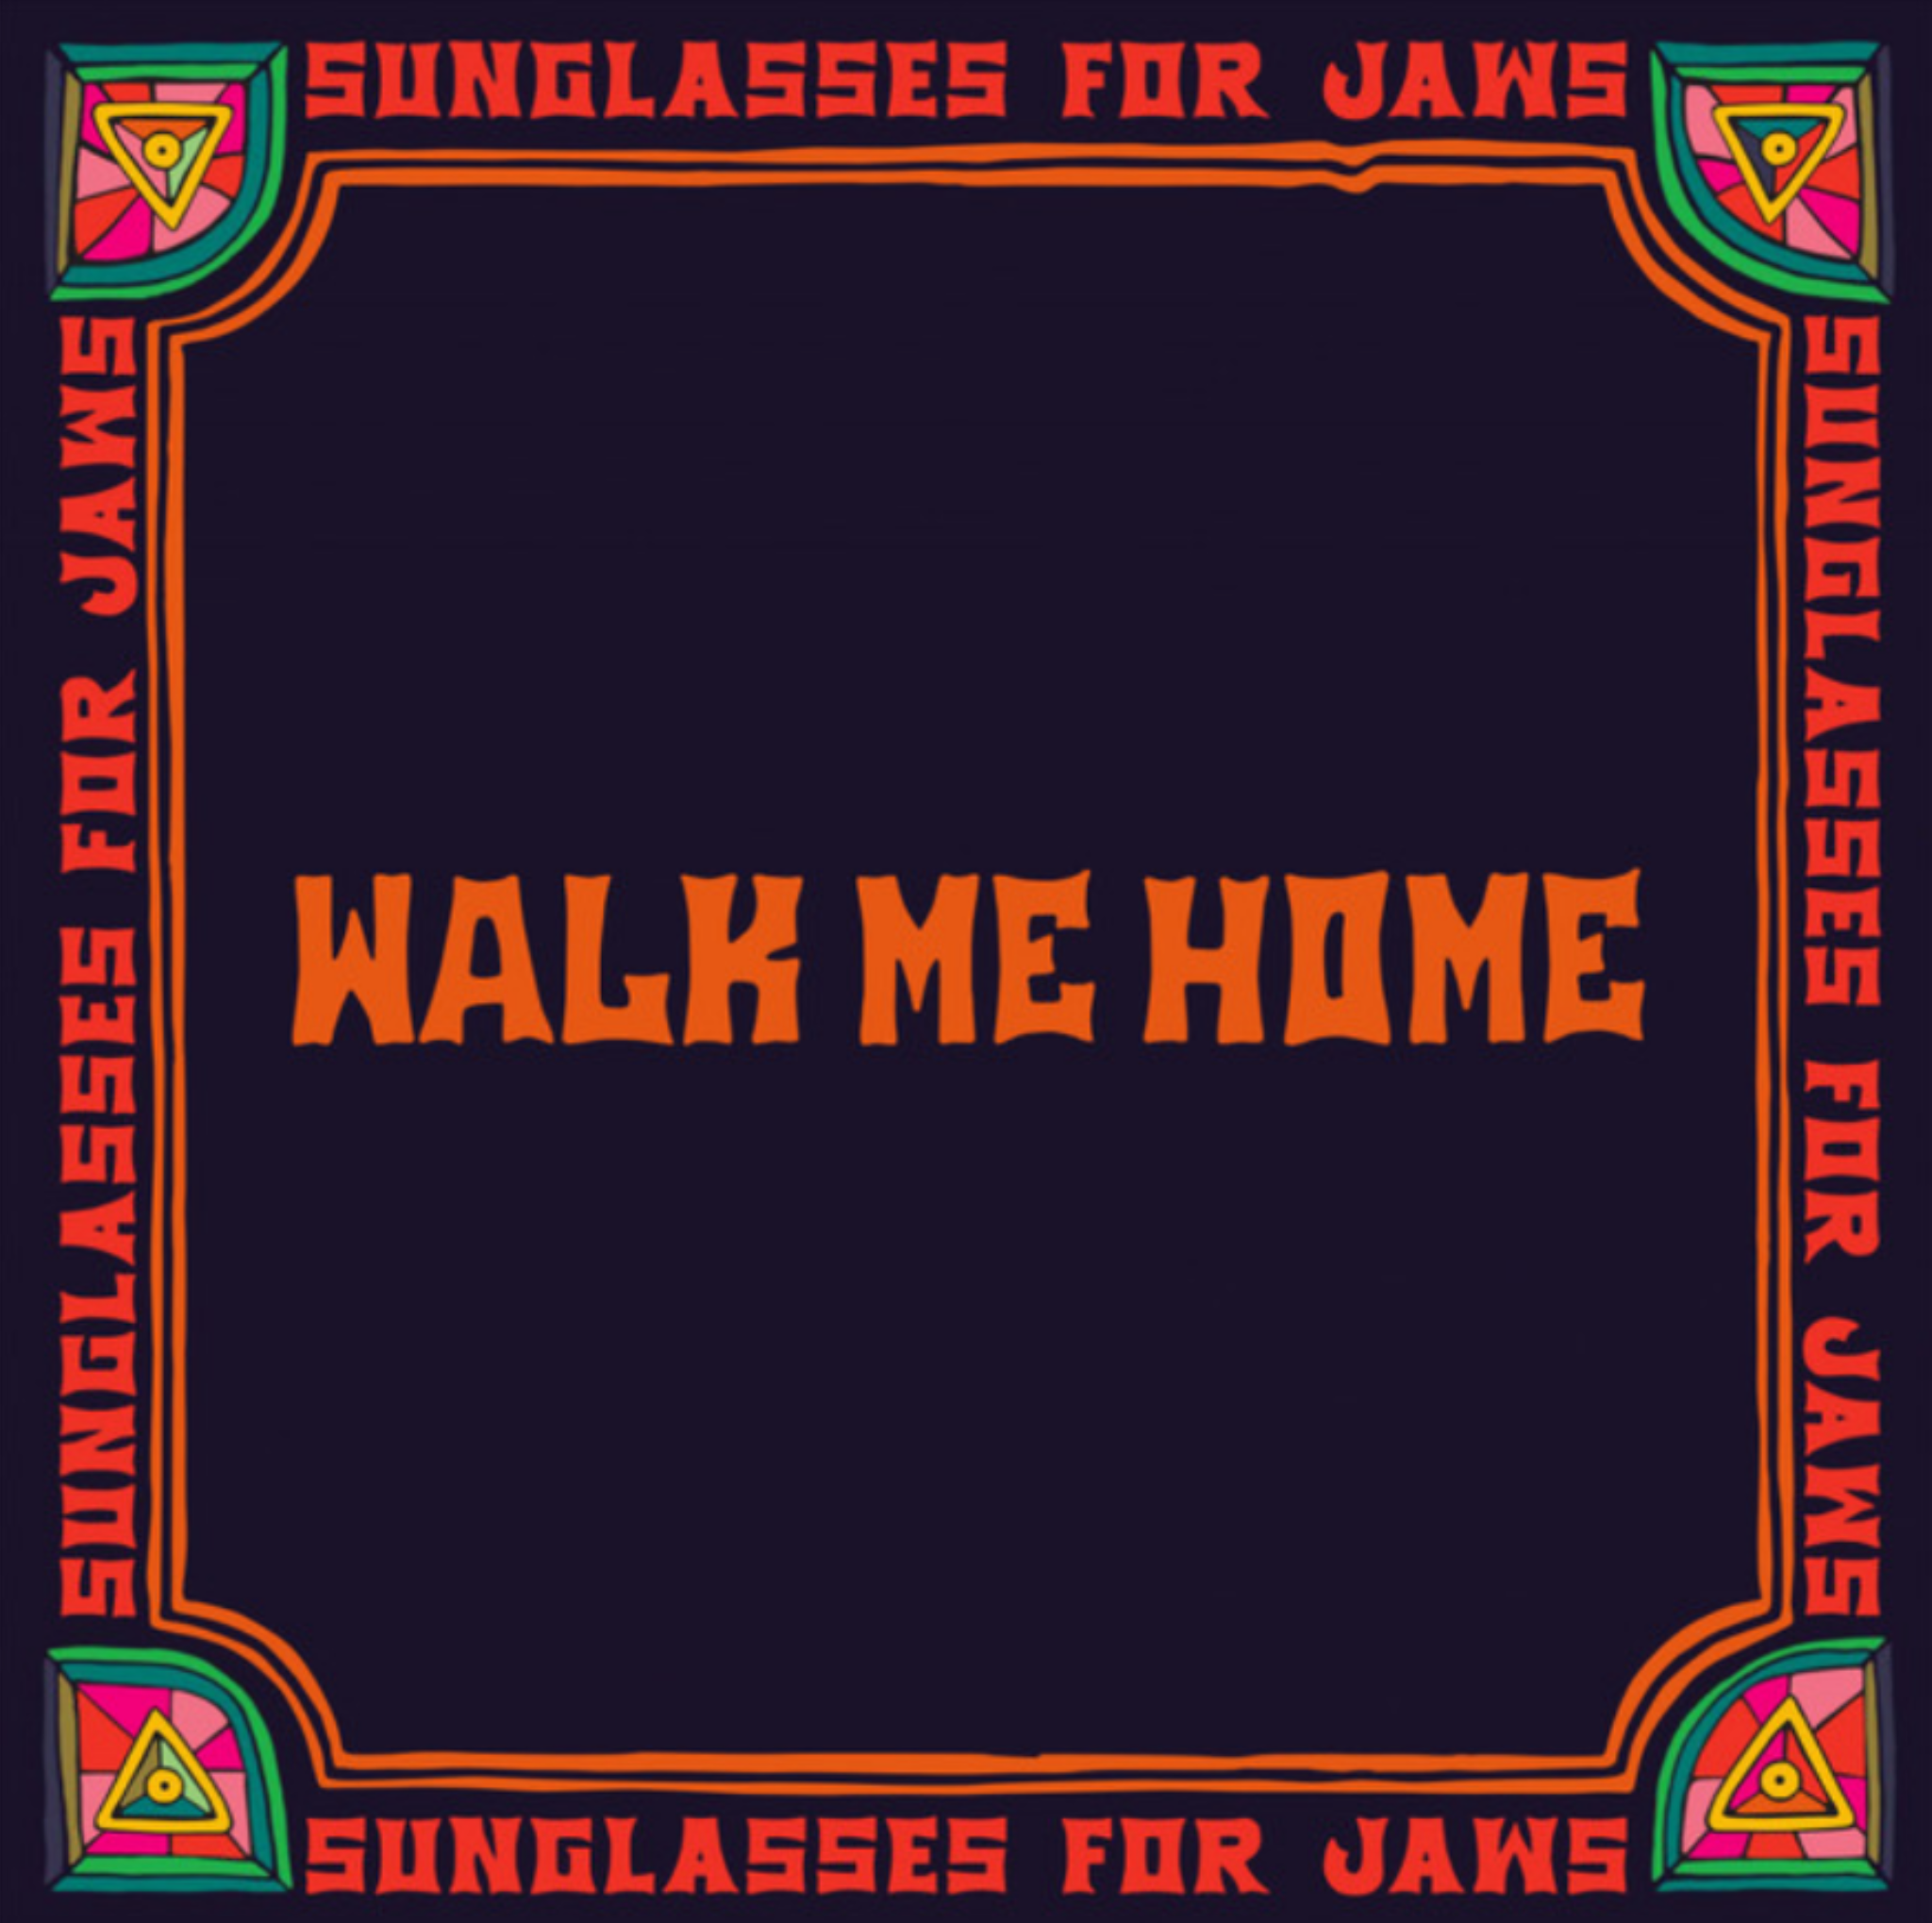 Sunglasses For Jaws – Walk Me Home